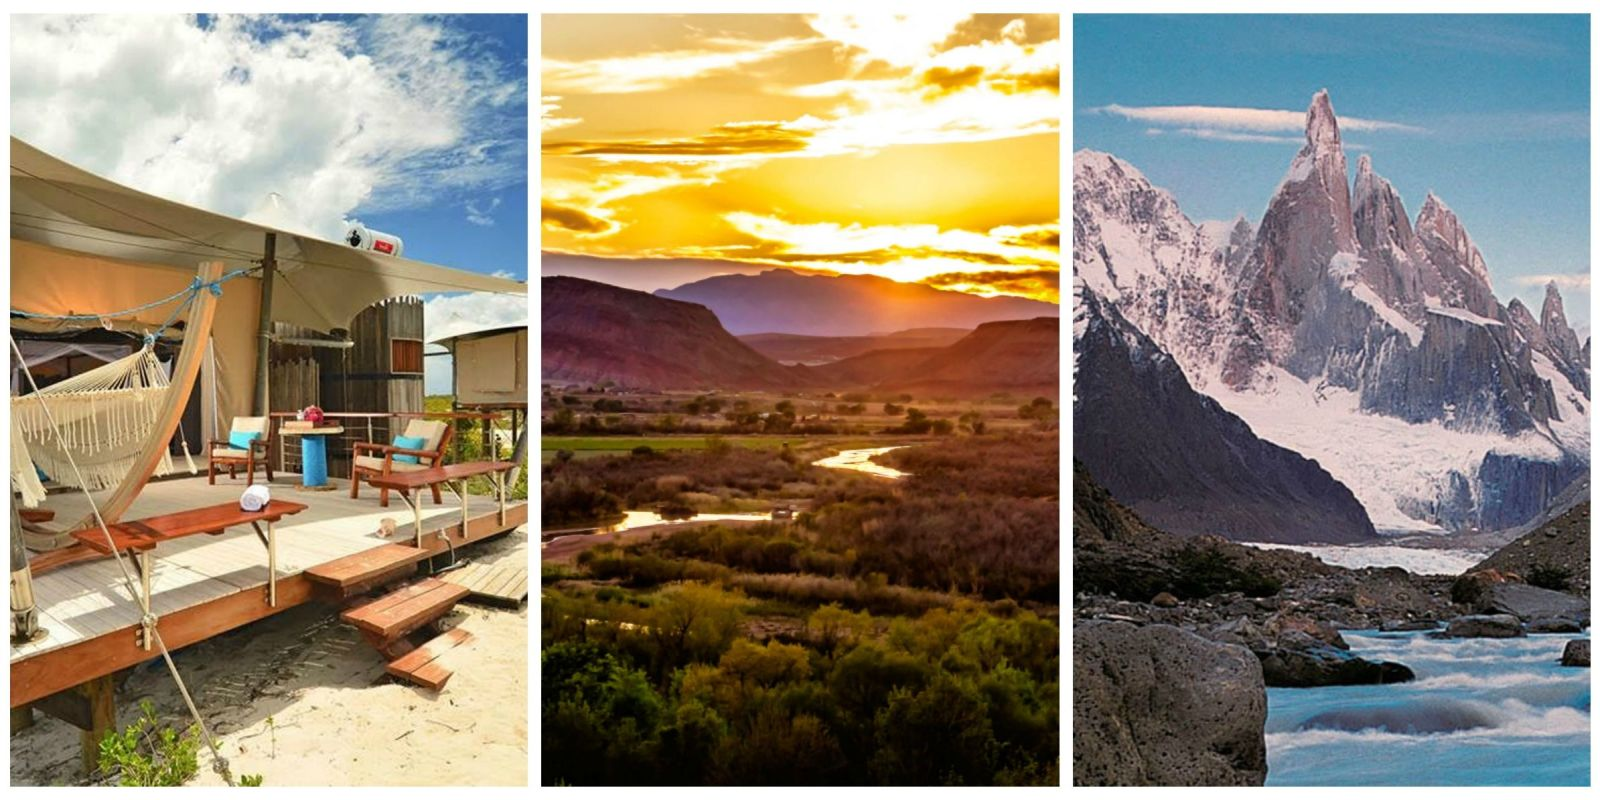 15 Solo Getaways Every GrownAss Woman Should Take